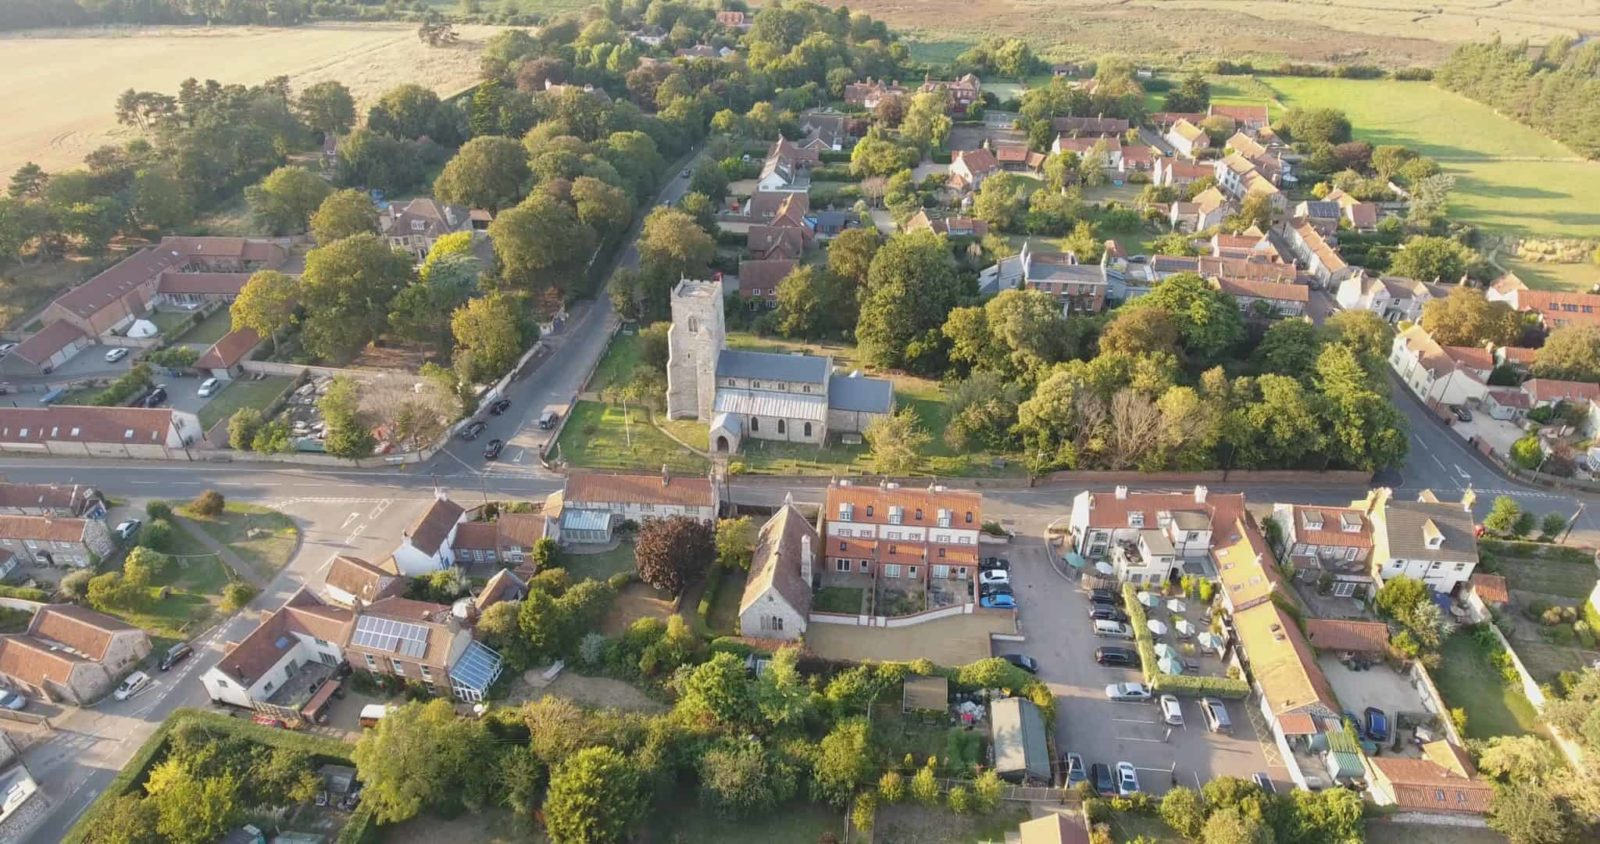 Drone-Wedding-brancaster-staithe-norfolk-drone-imagery